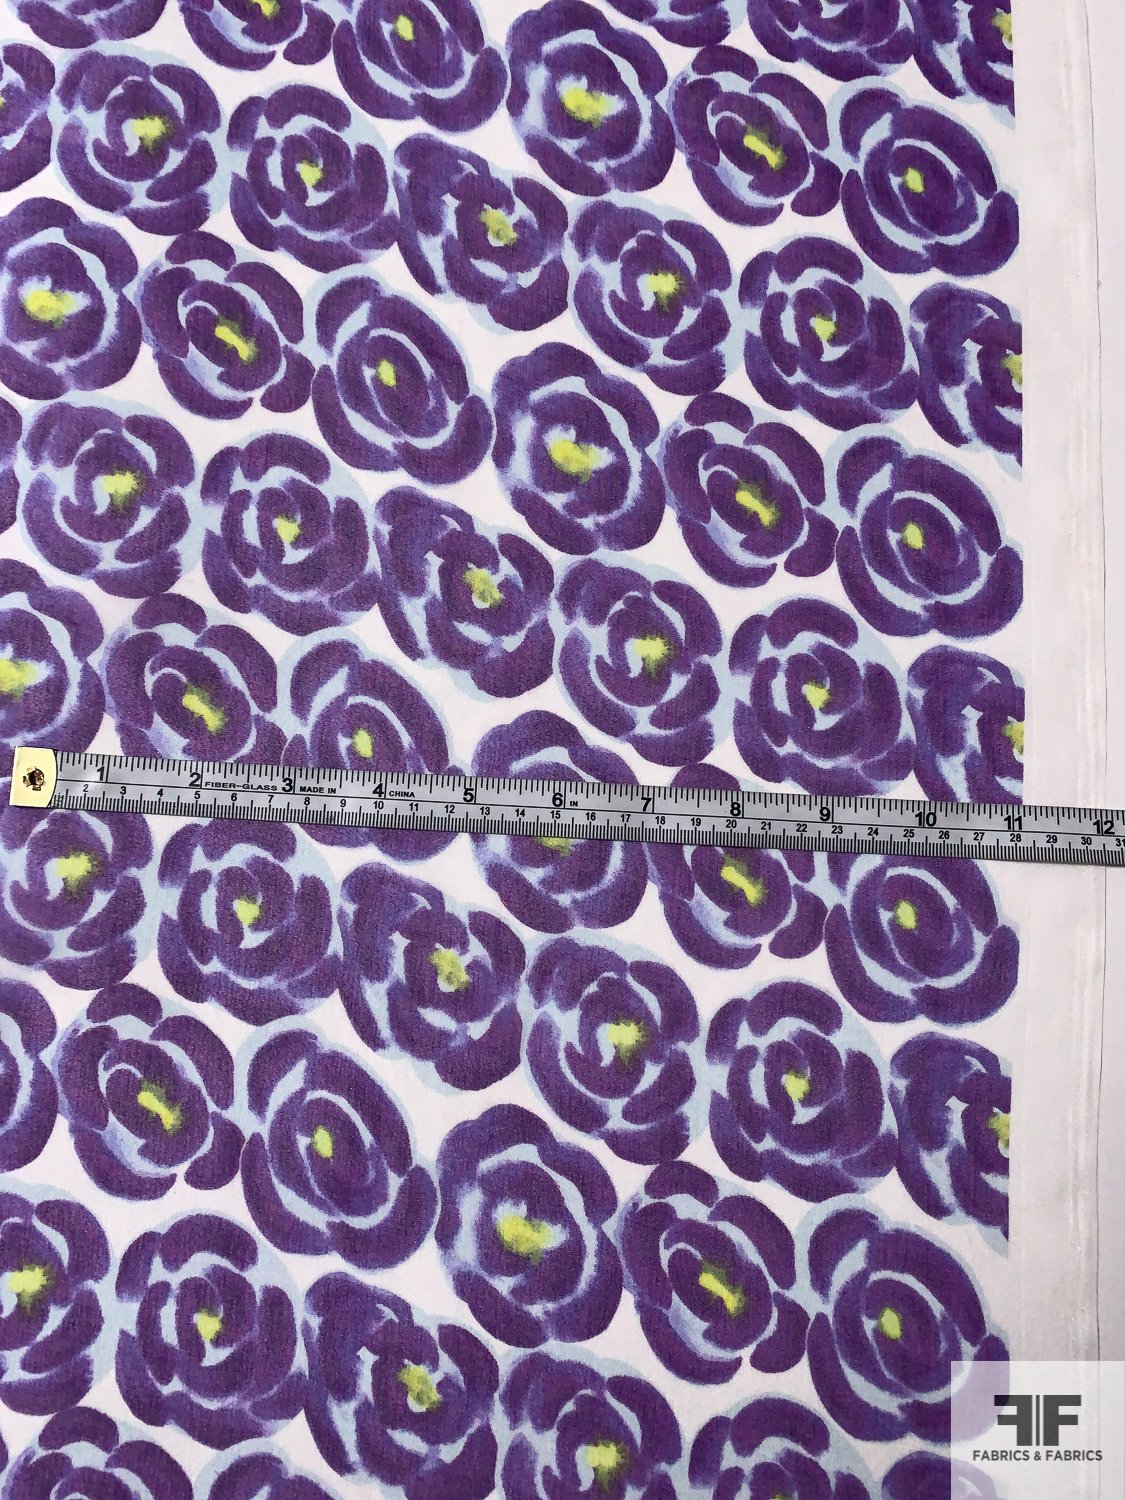 Painterly Floral Printed Silk Chiffon - Purple / Faint Blue / Chartreuse / White